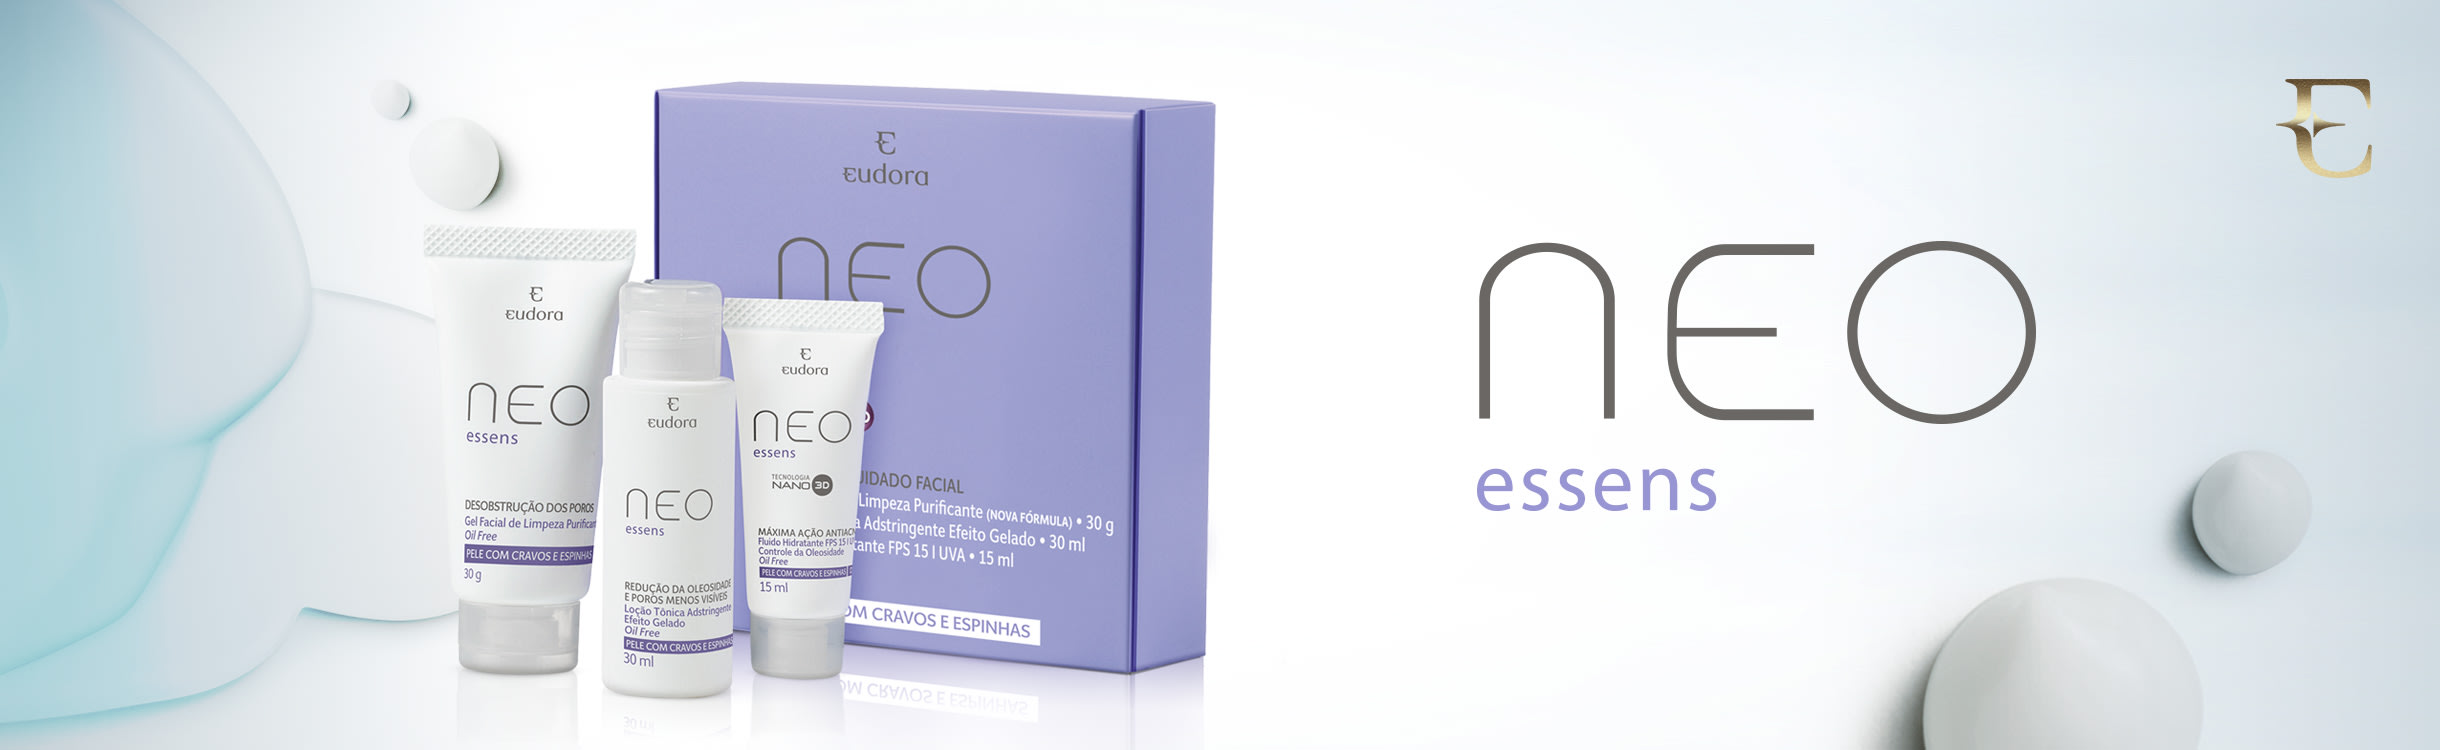 Neo Essens: Esfoliante Facial